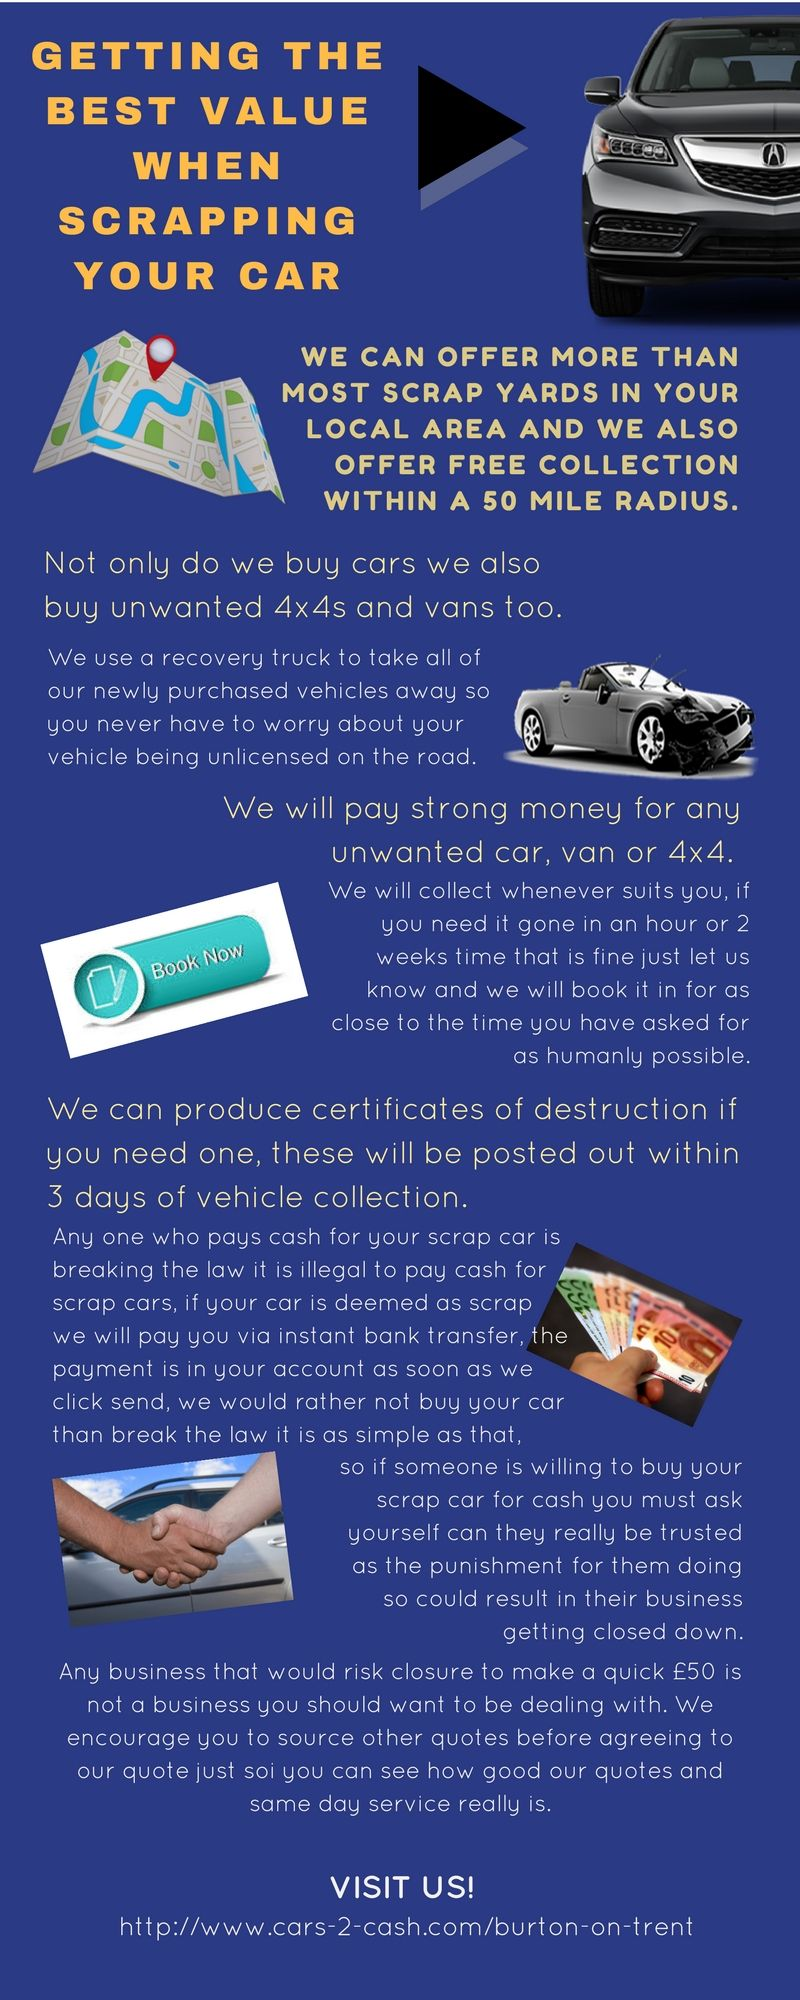 Cars-2-Cash team are dedicated to getting you the best value ...